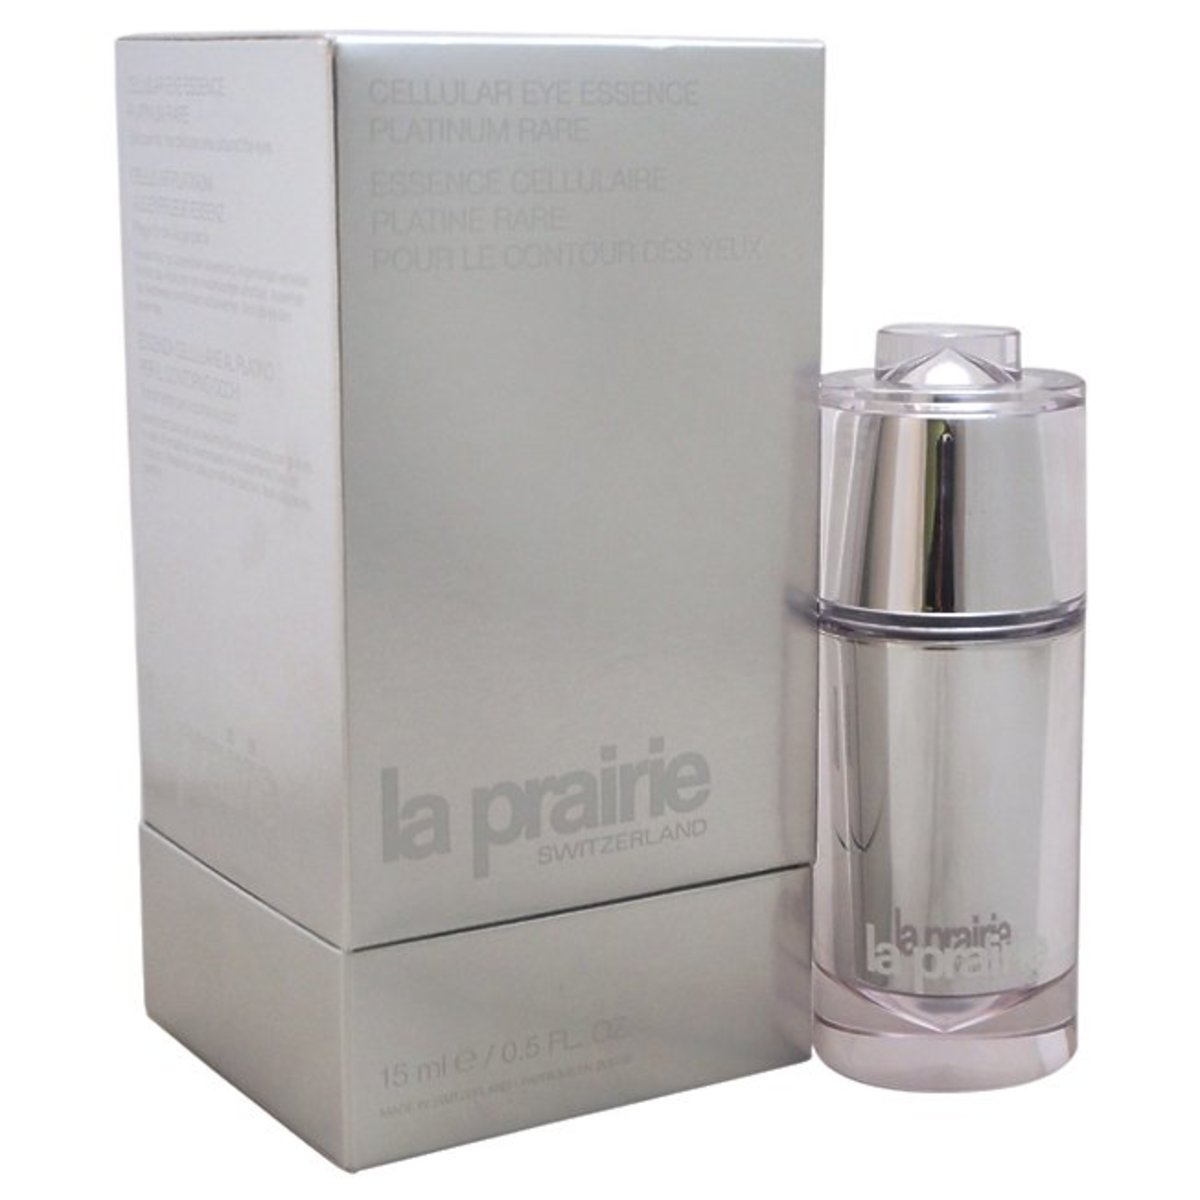 Cellular Eye Essence Platinum Rare 15ml [Parallel Import]